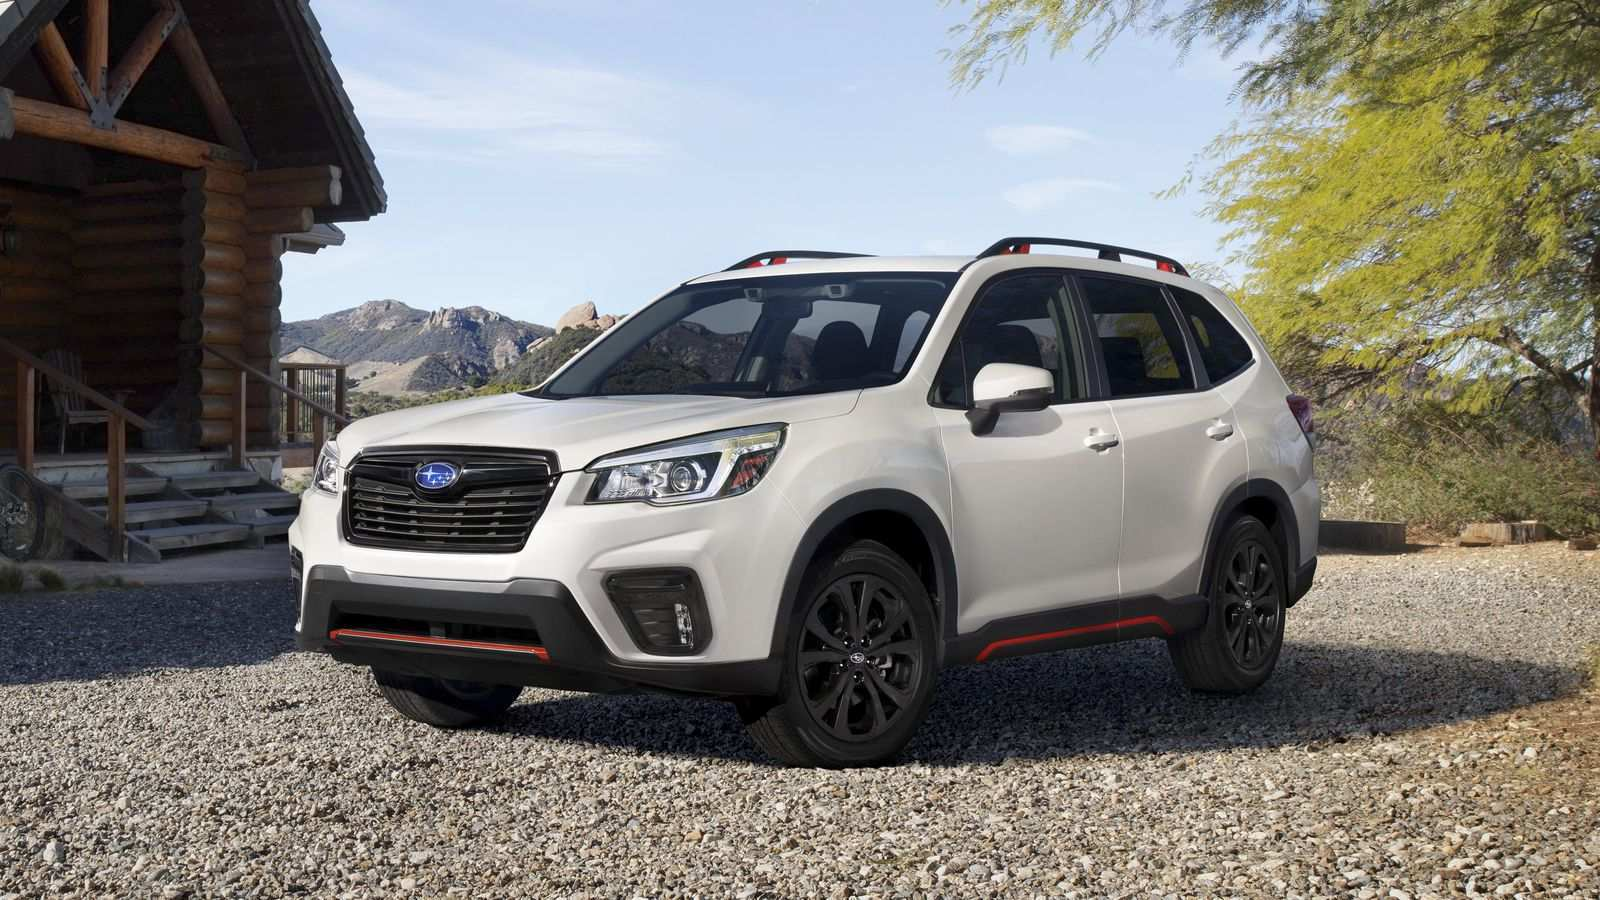 27 Great Subaru Sport 2019 Wallpaper for Subaru Sport 2019